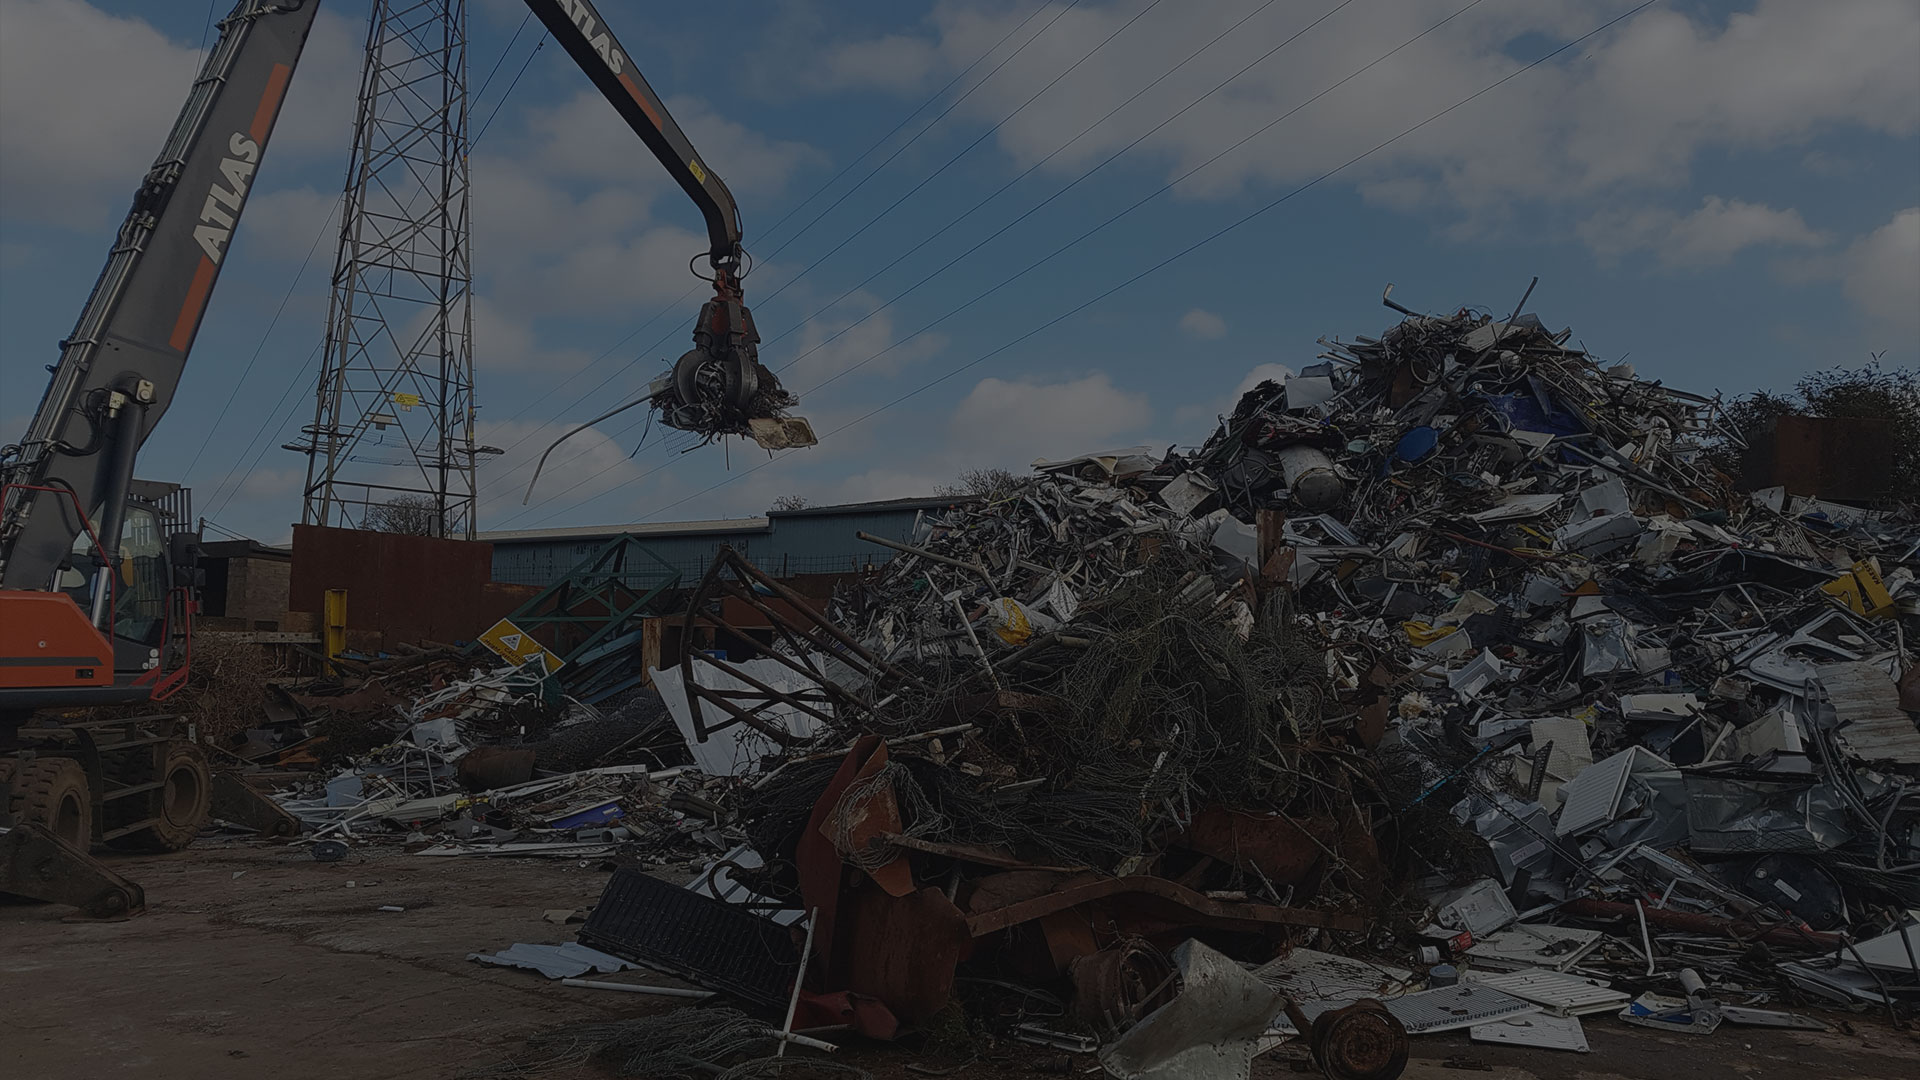 Metal Recycling in Dorset